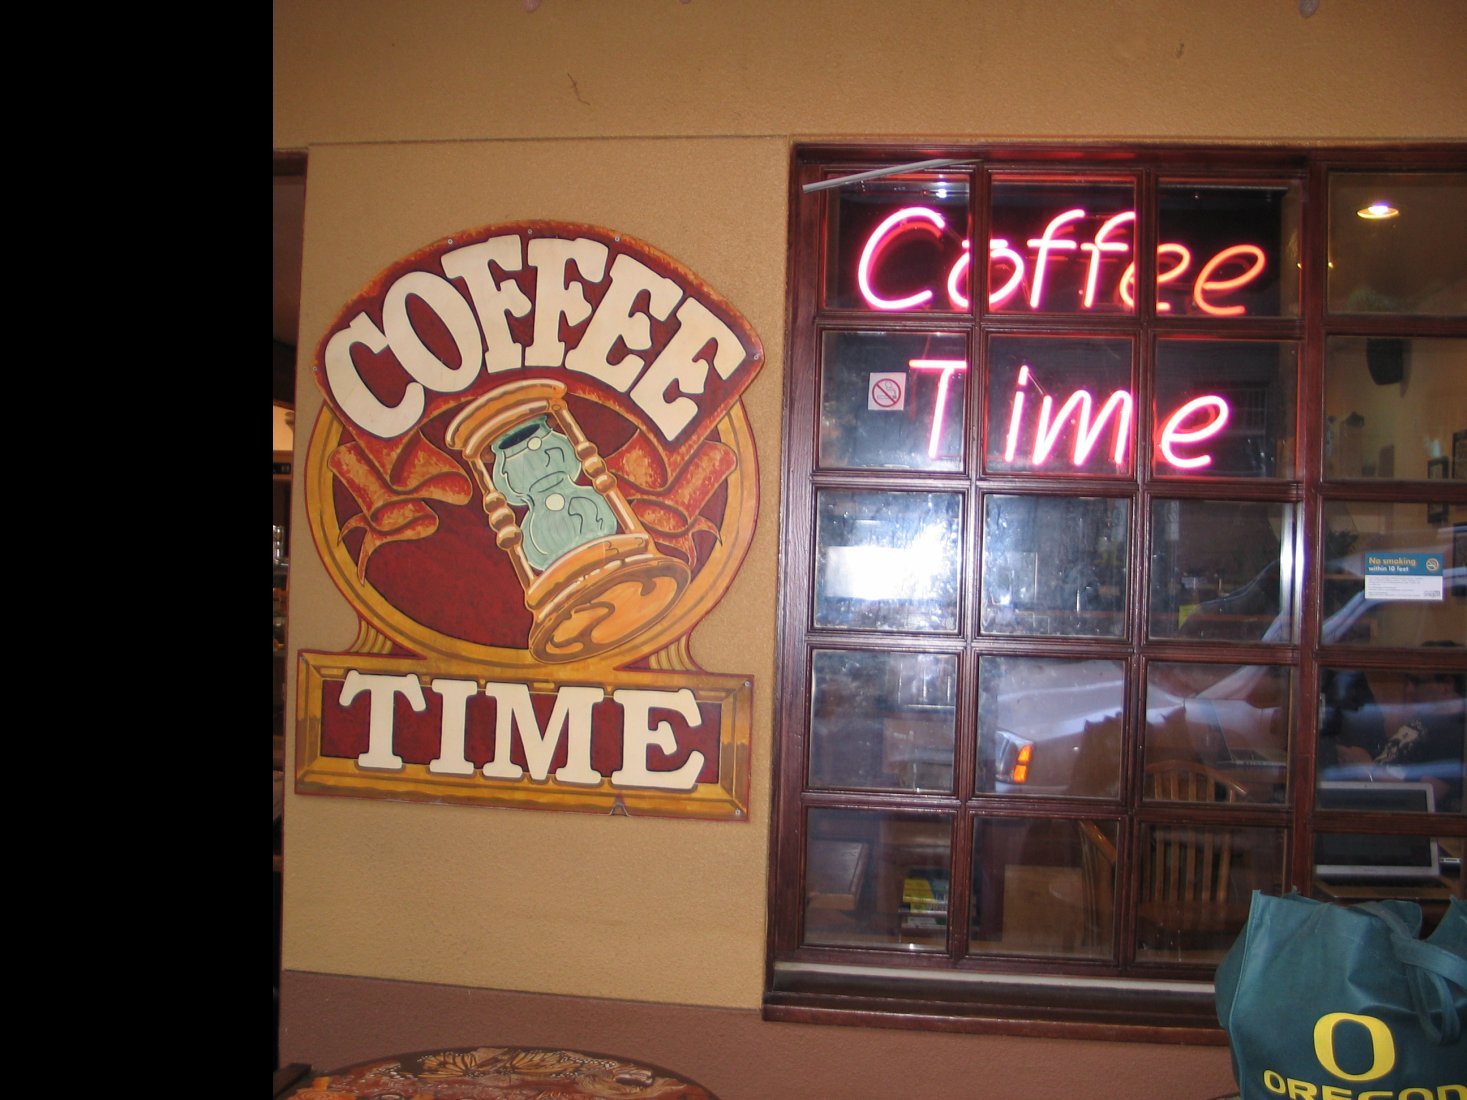 Coffee Time sign.